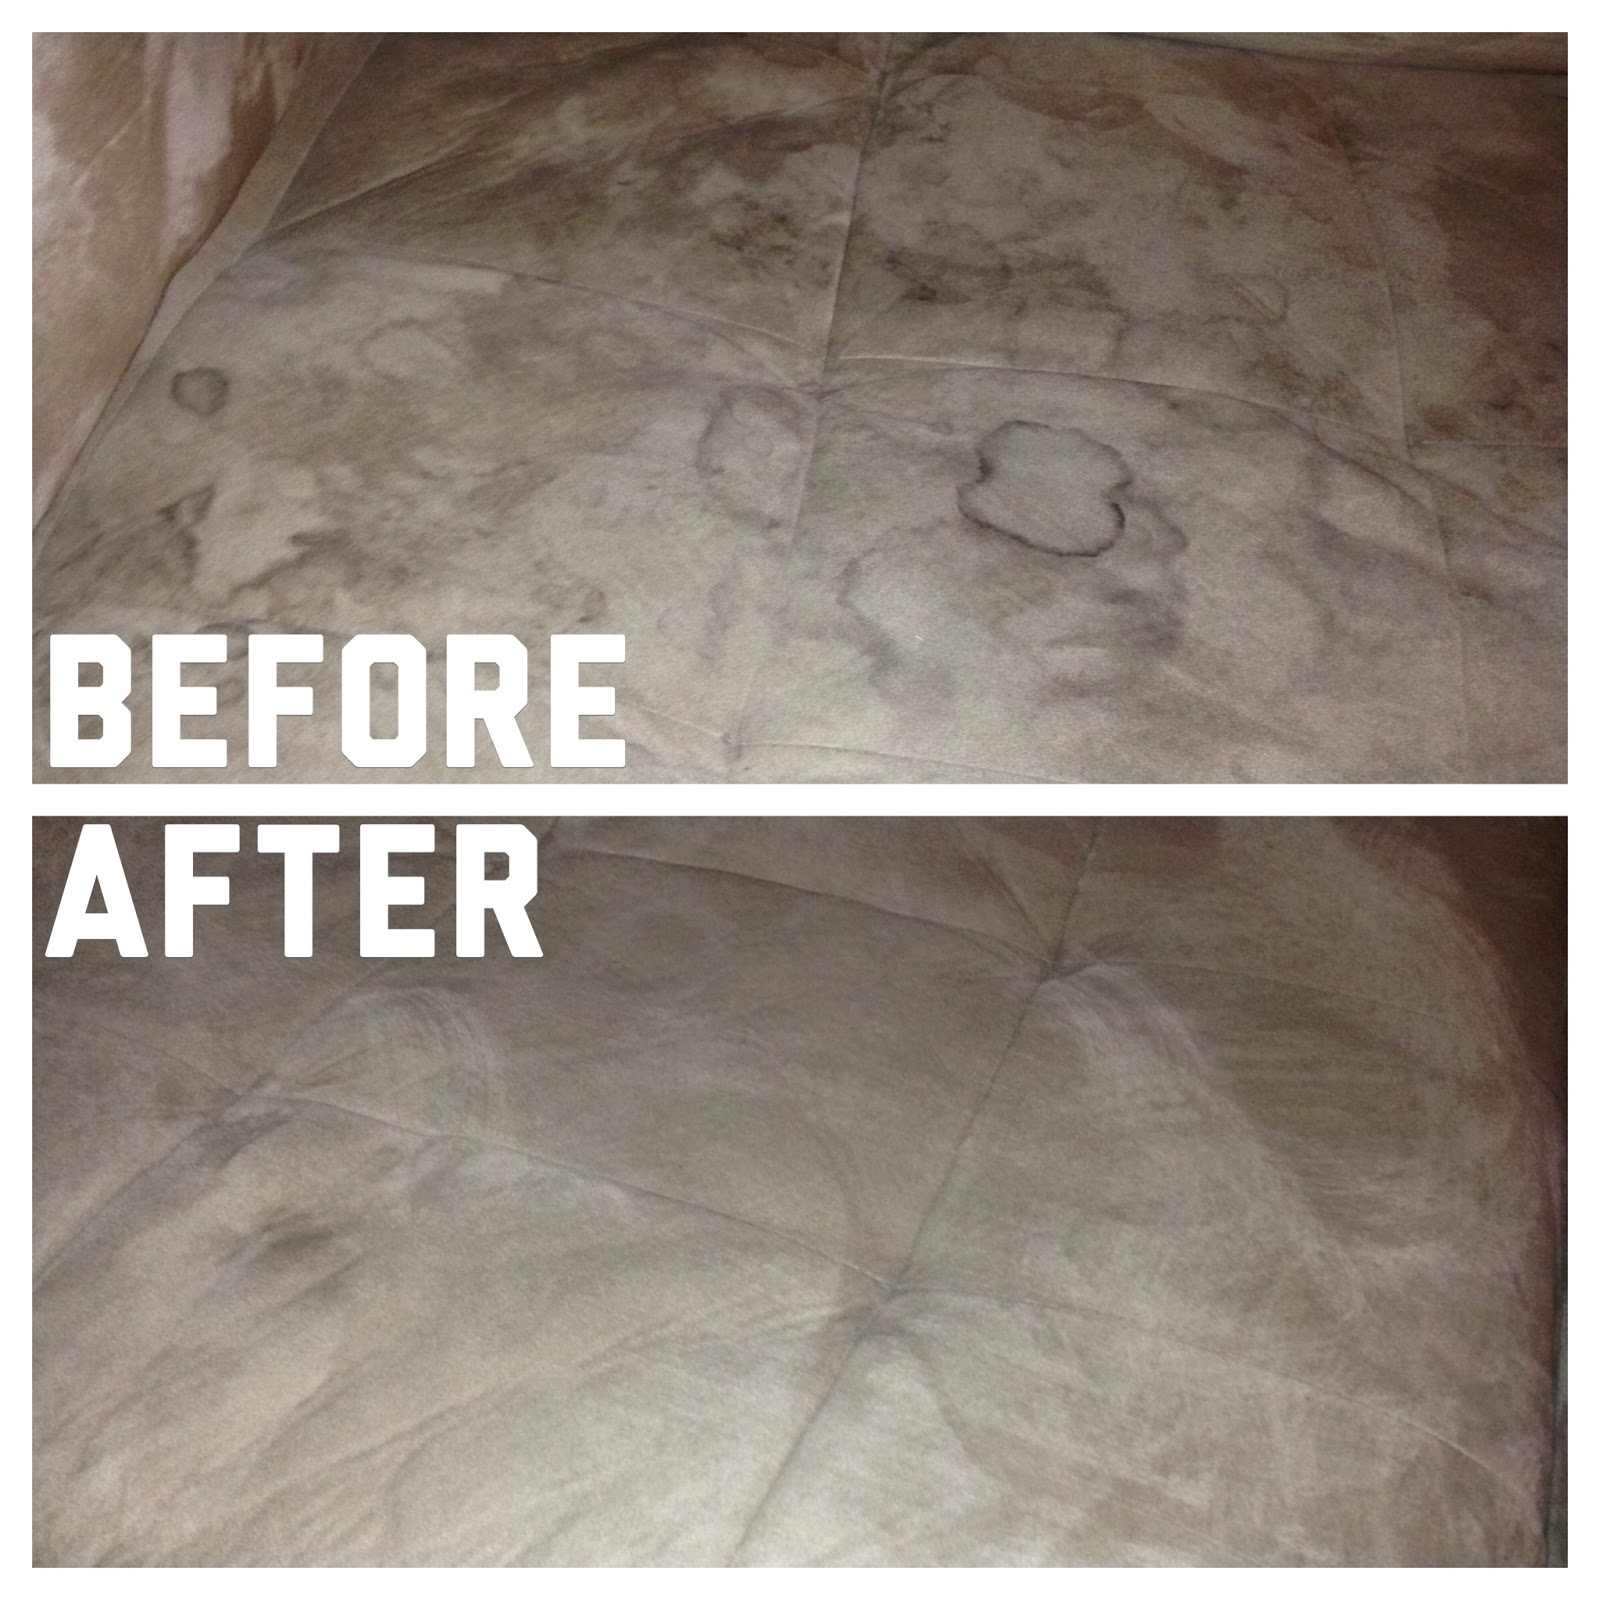 couch cleaning melbourne - Before After